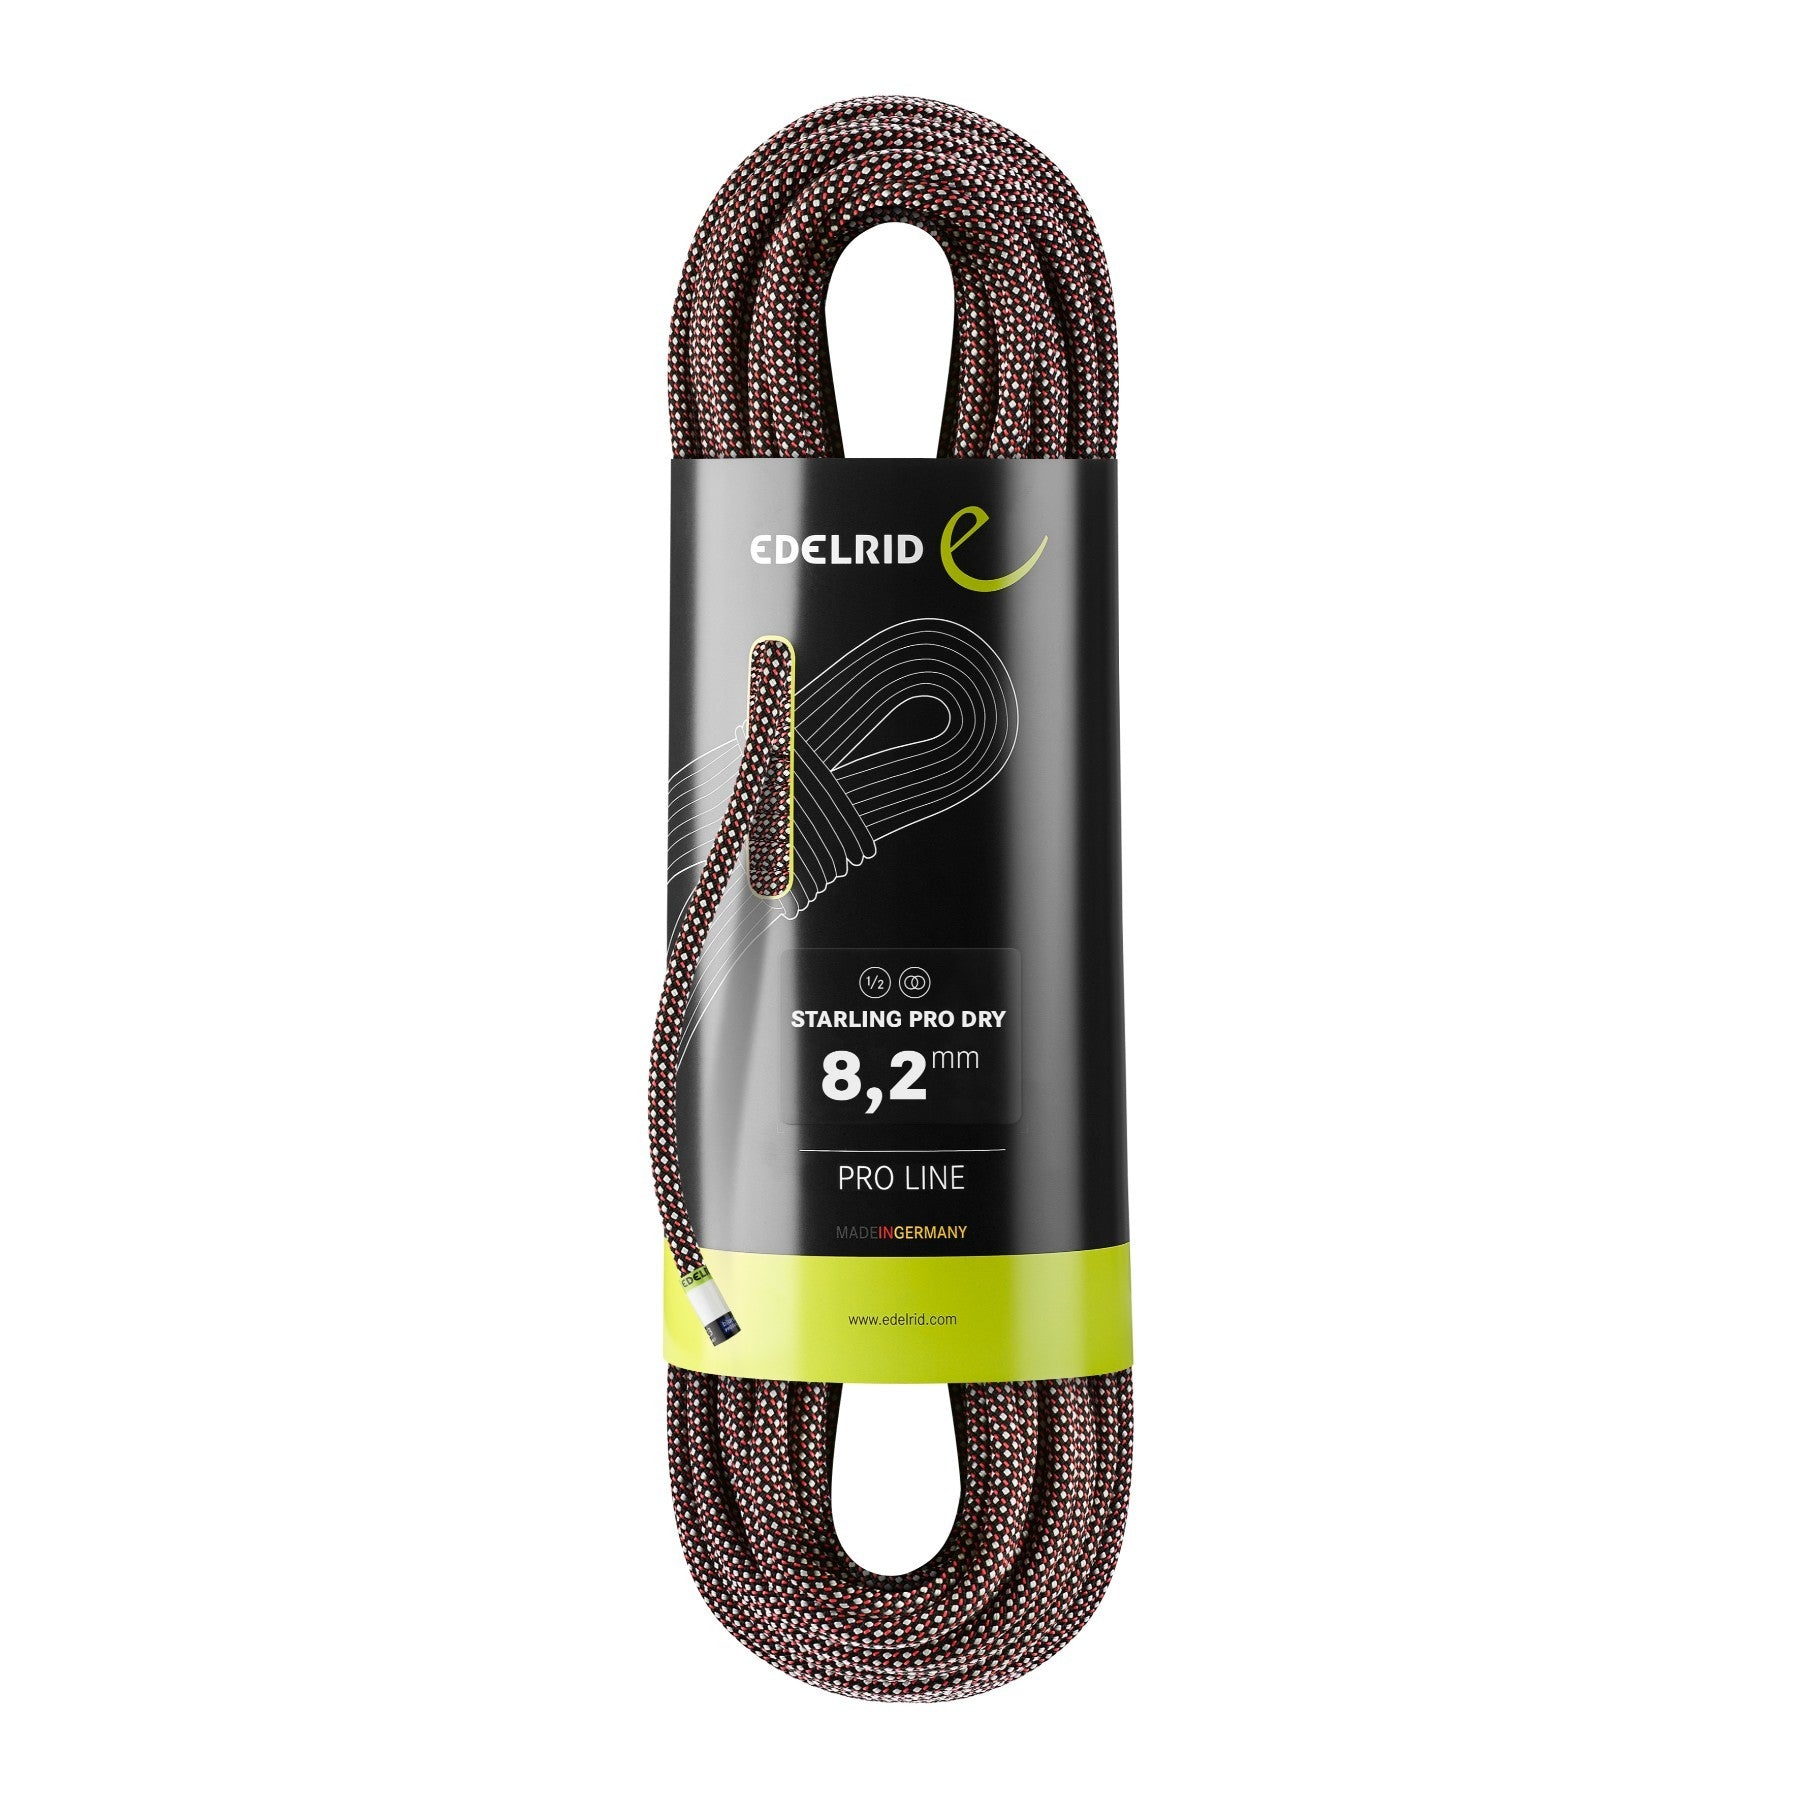 Edelrid Starling Pro Dry 8.2mm x 60m, Night